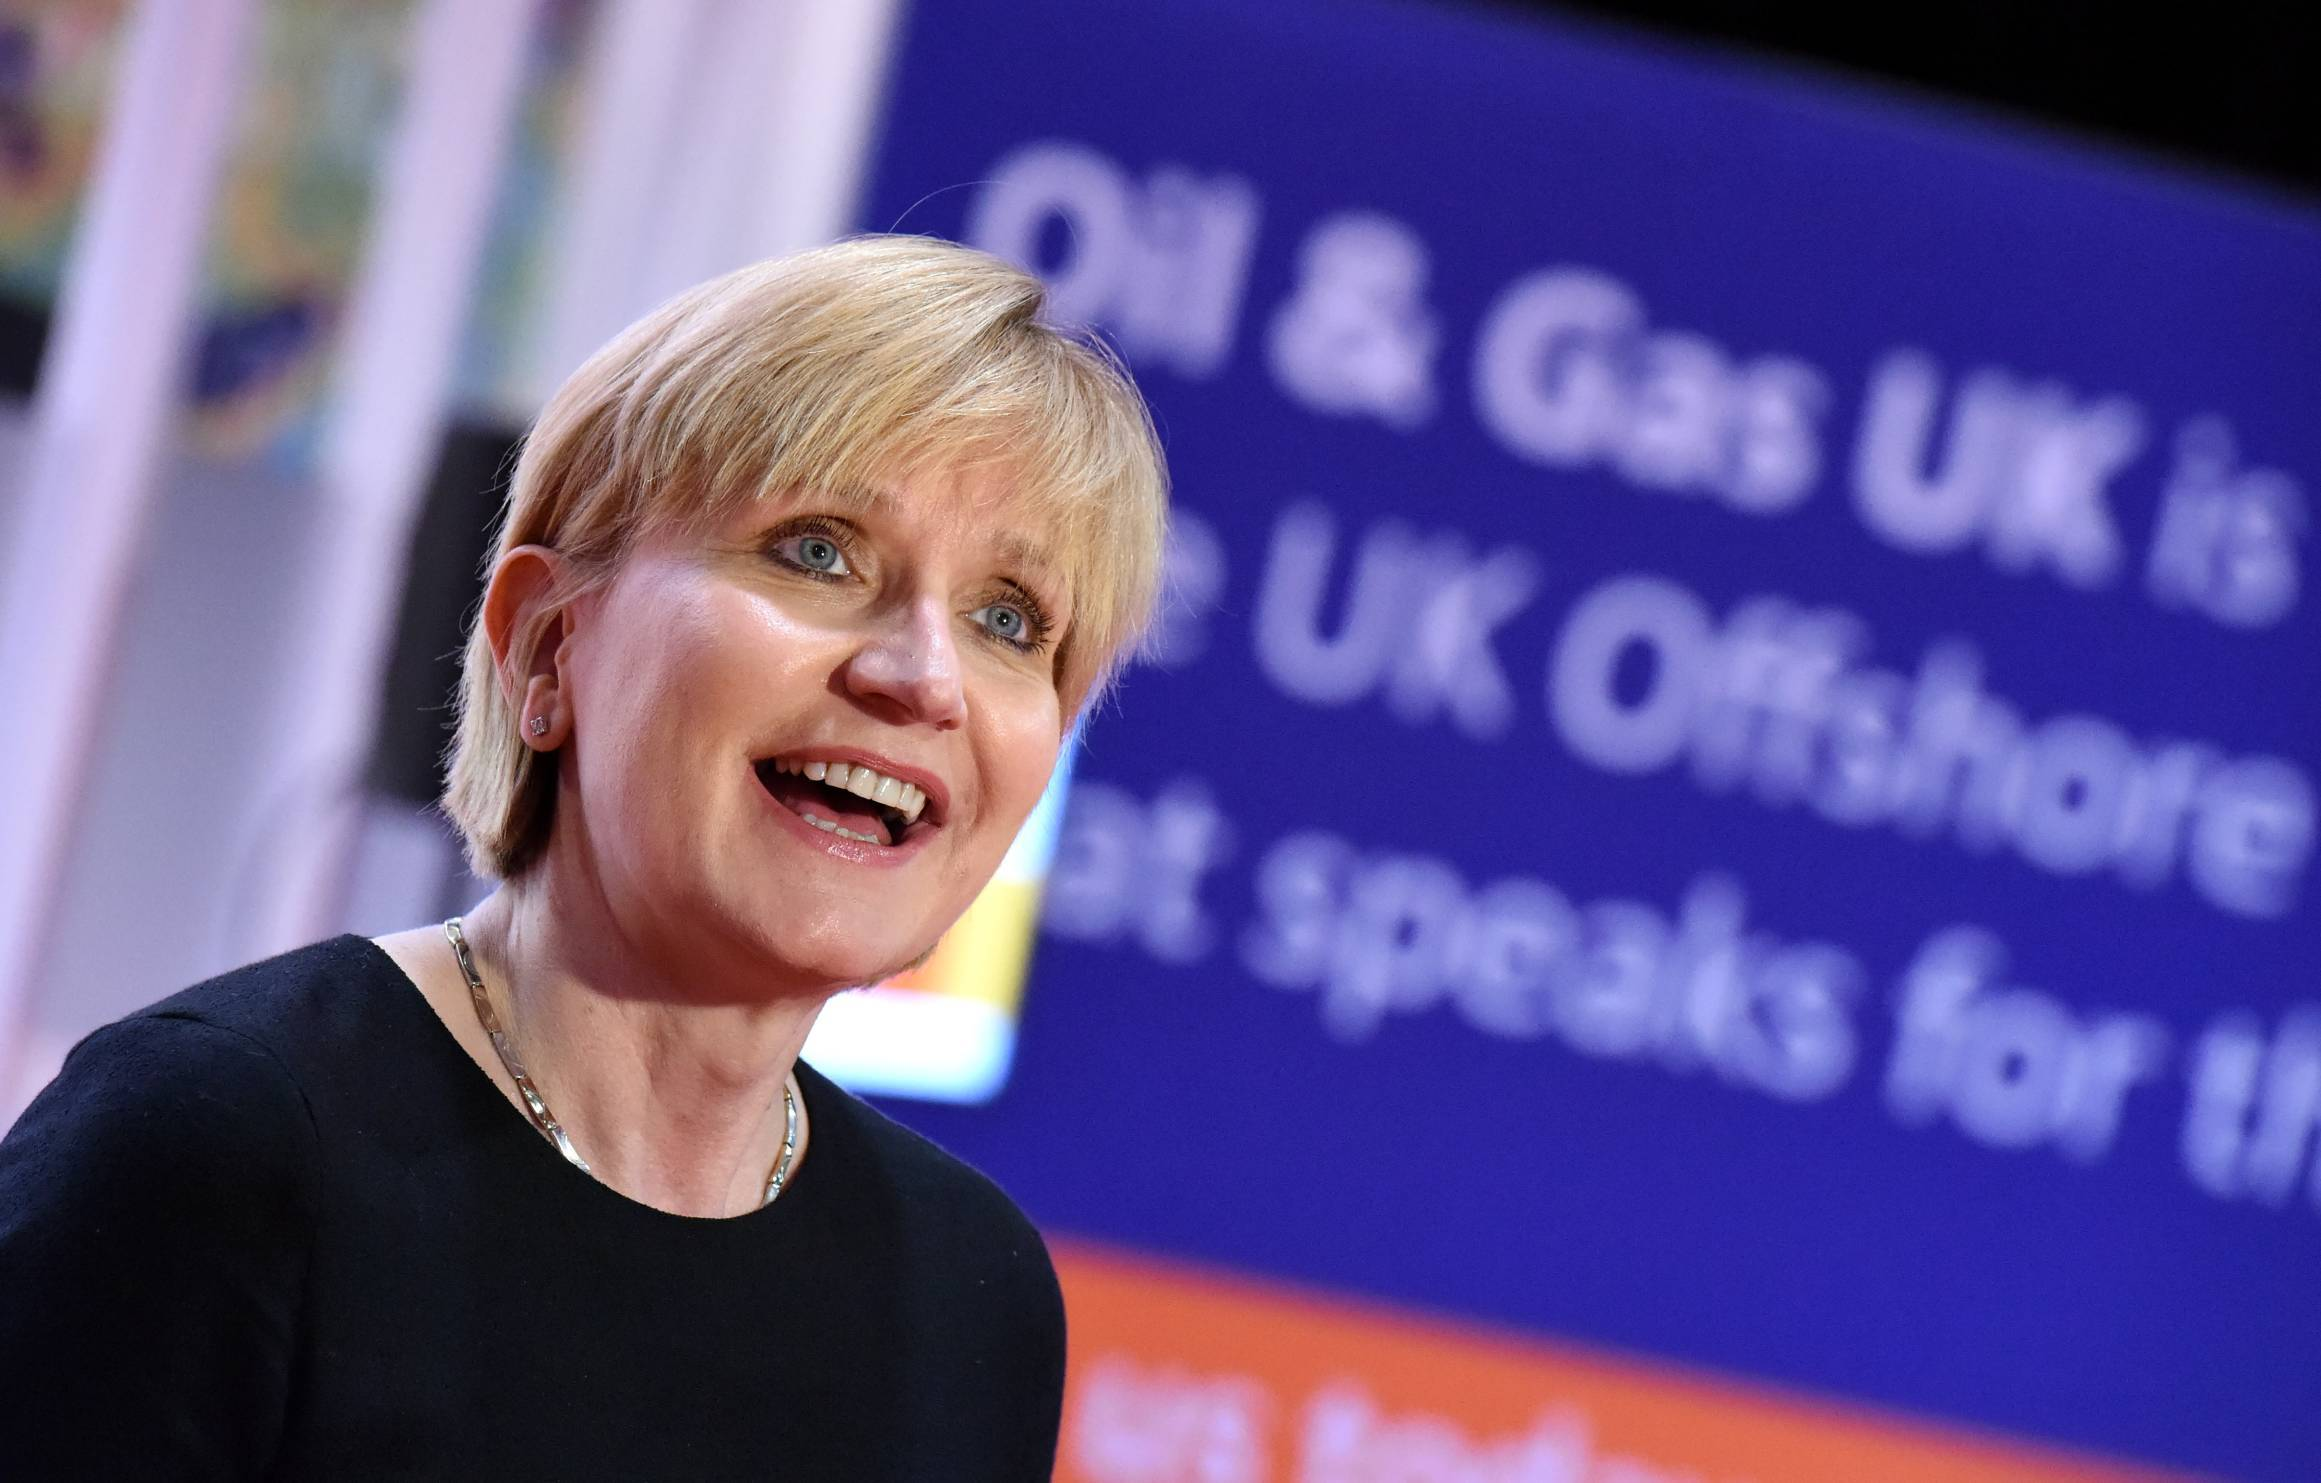 Oil and Gas UK chief executive Deirdre Michie.